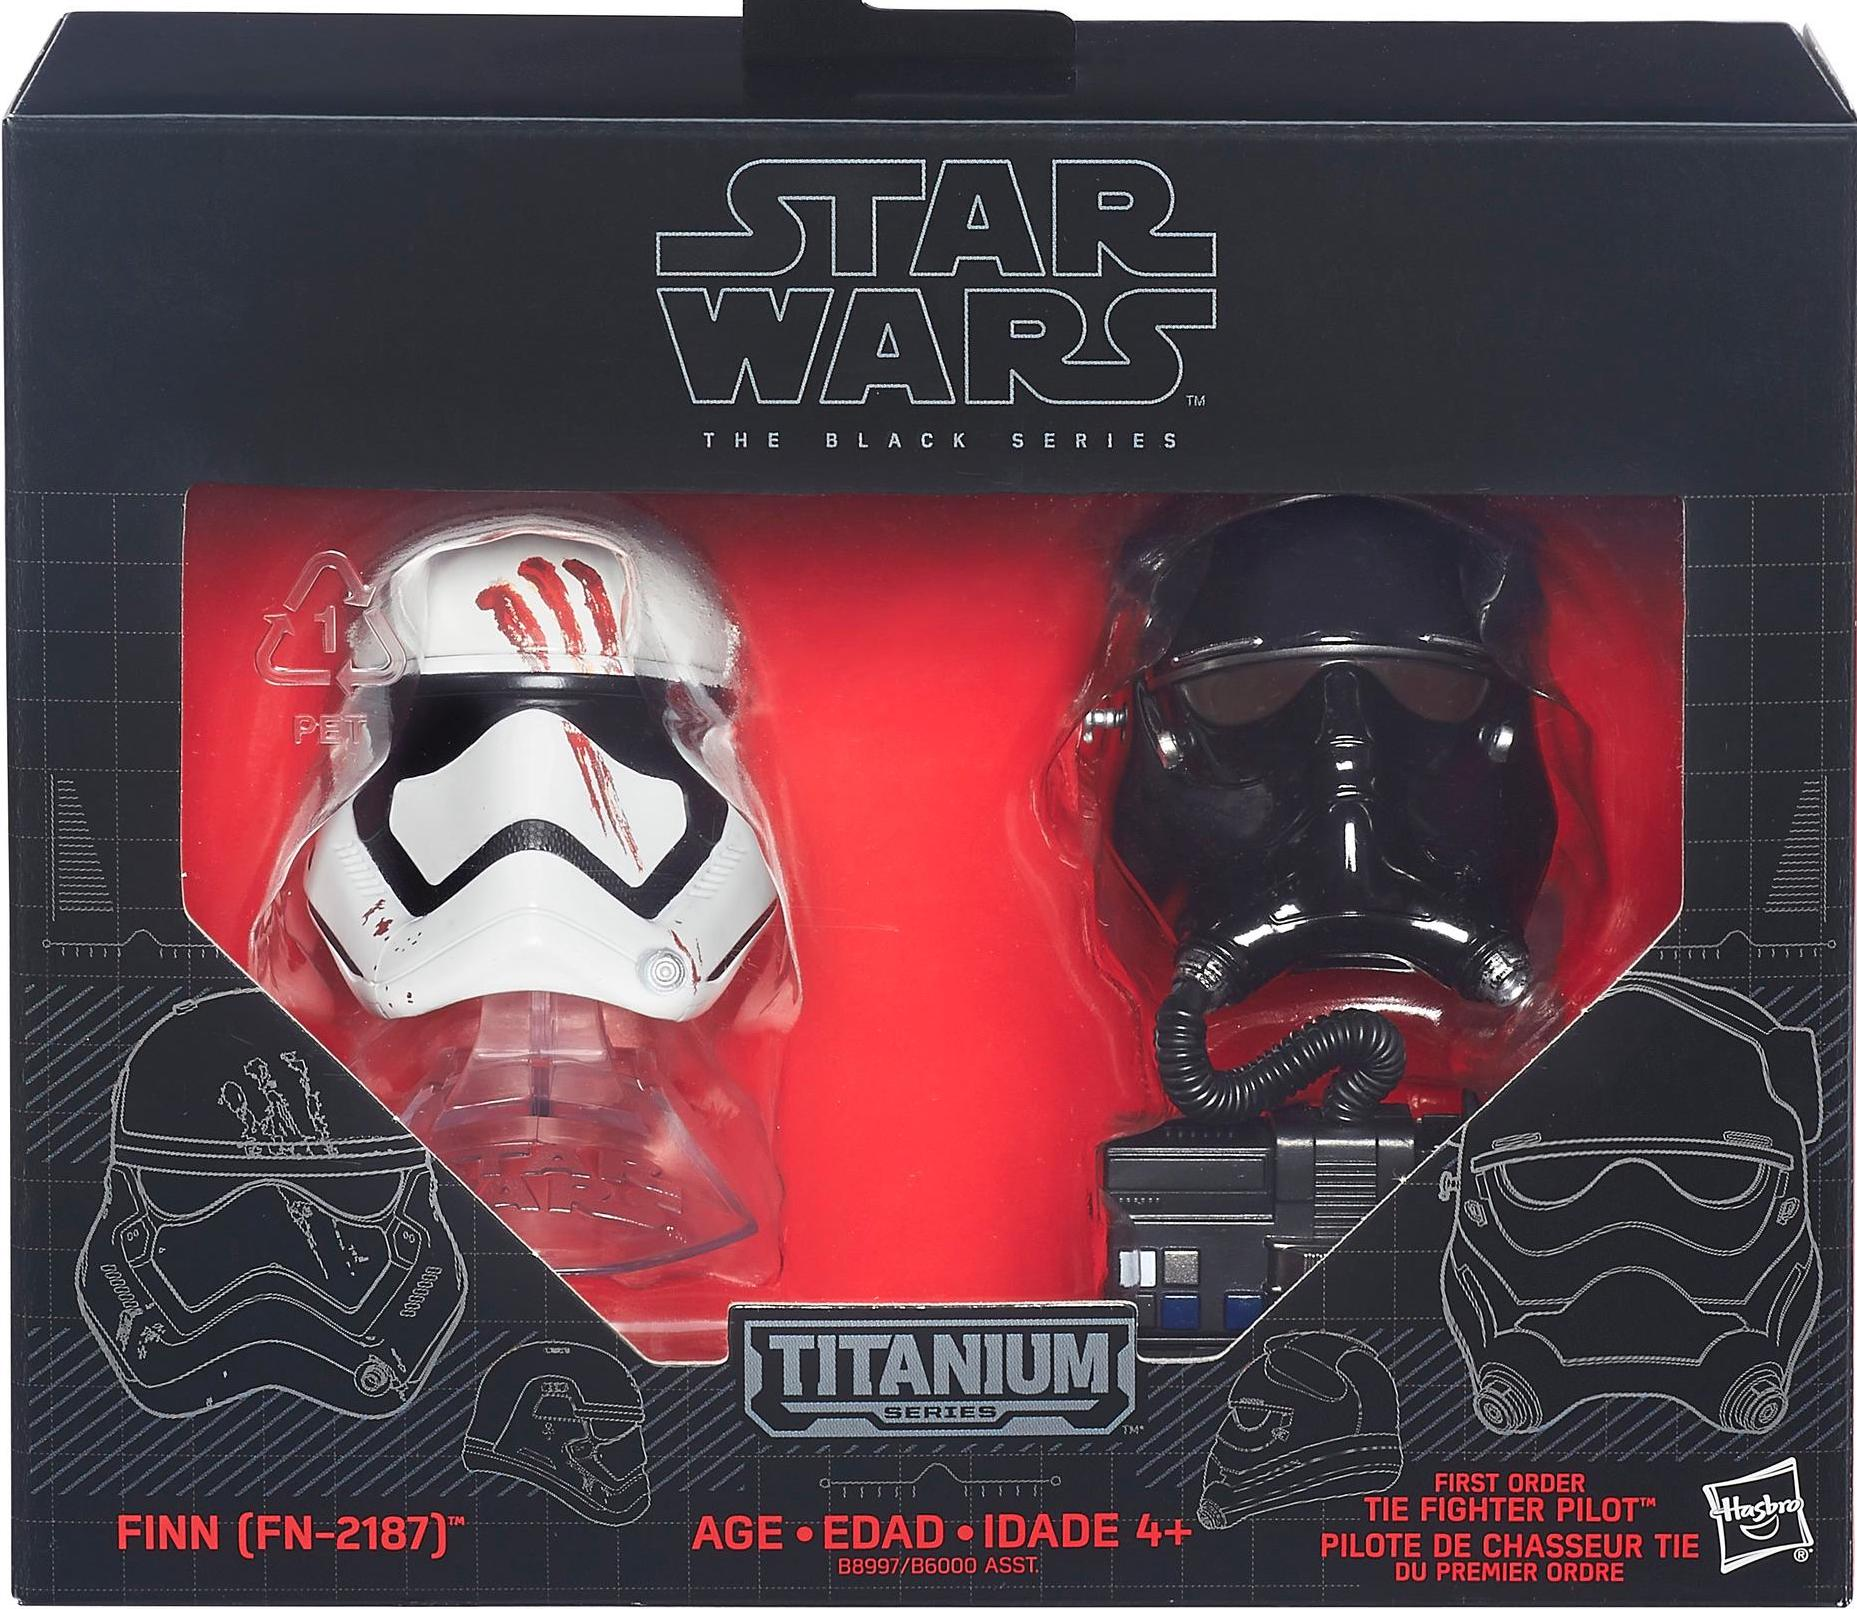 Star Wars #5 Black Series Titanium Helmet Finn FN-2187 First Order Tie Pilot NEW